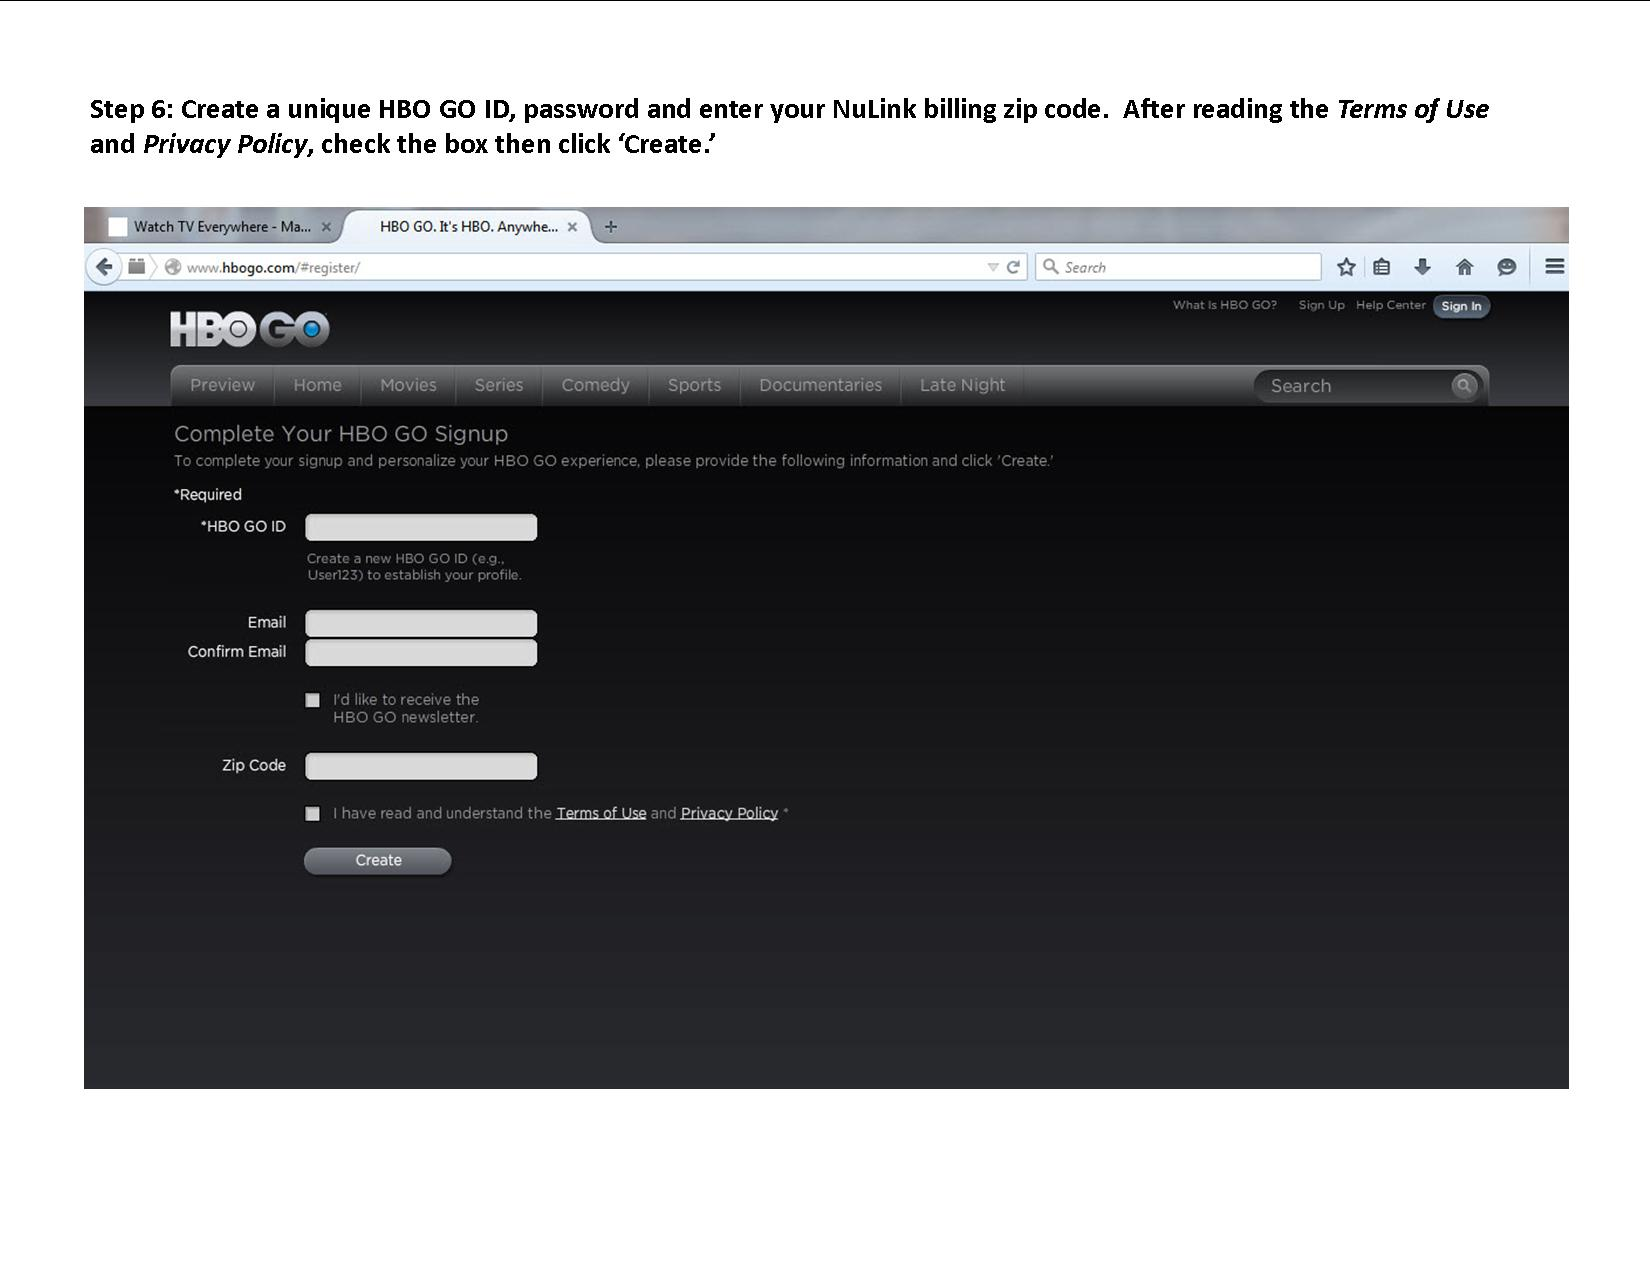 HBOGo step by step tutorial_5.jpg